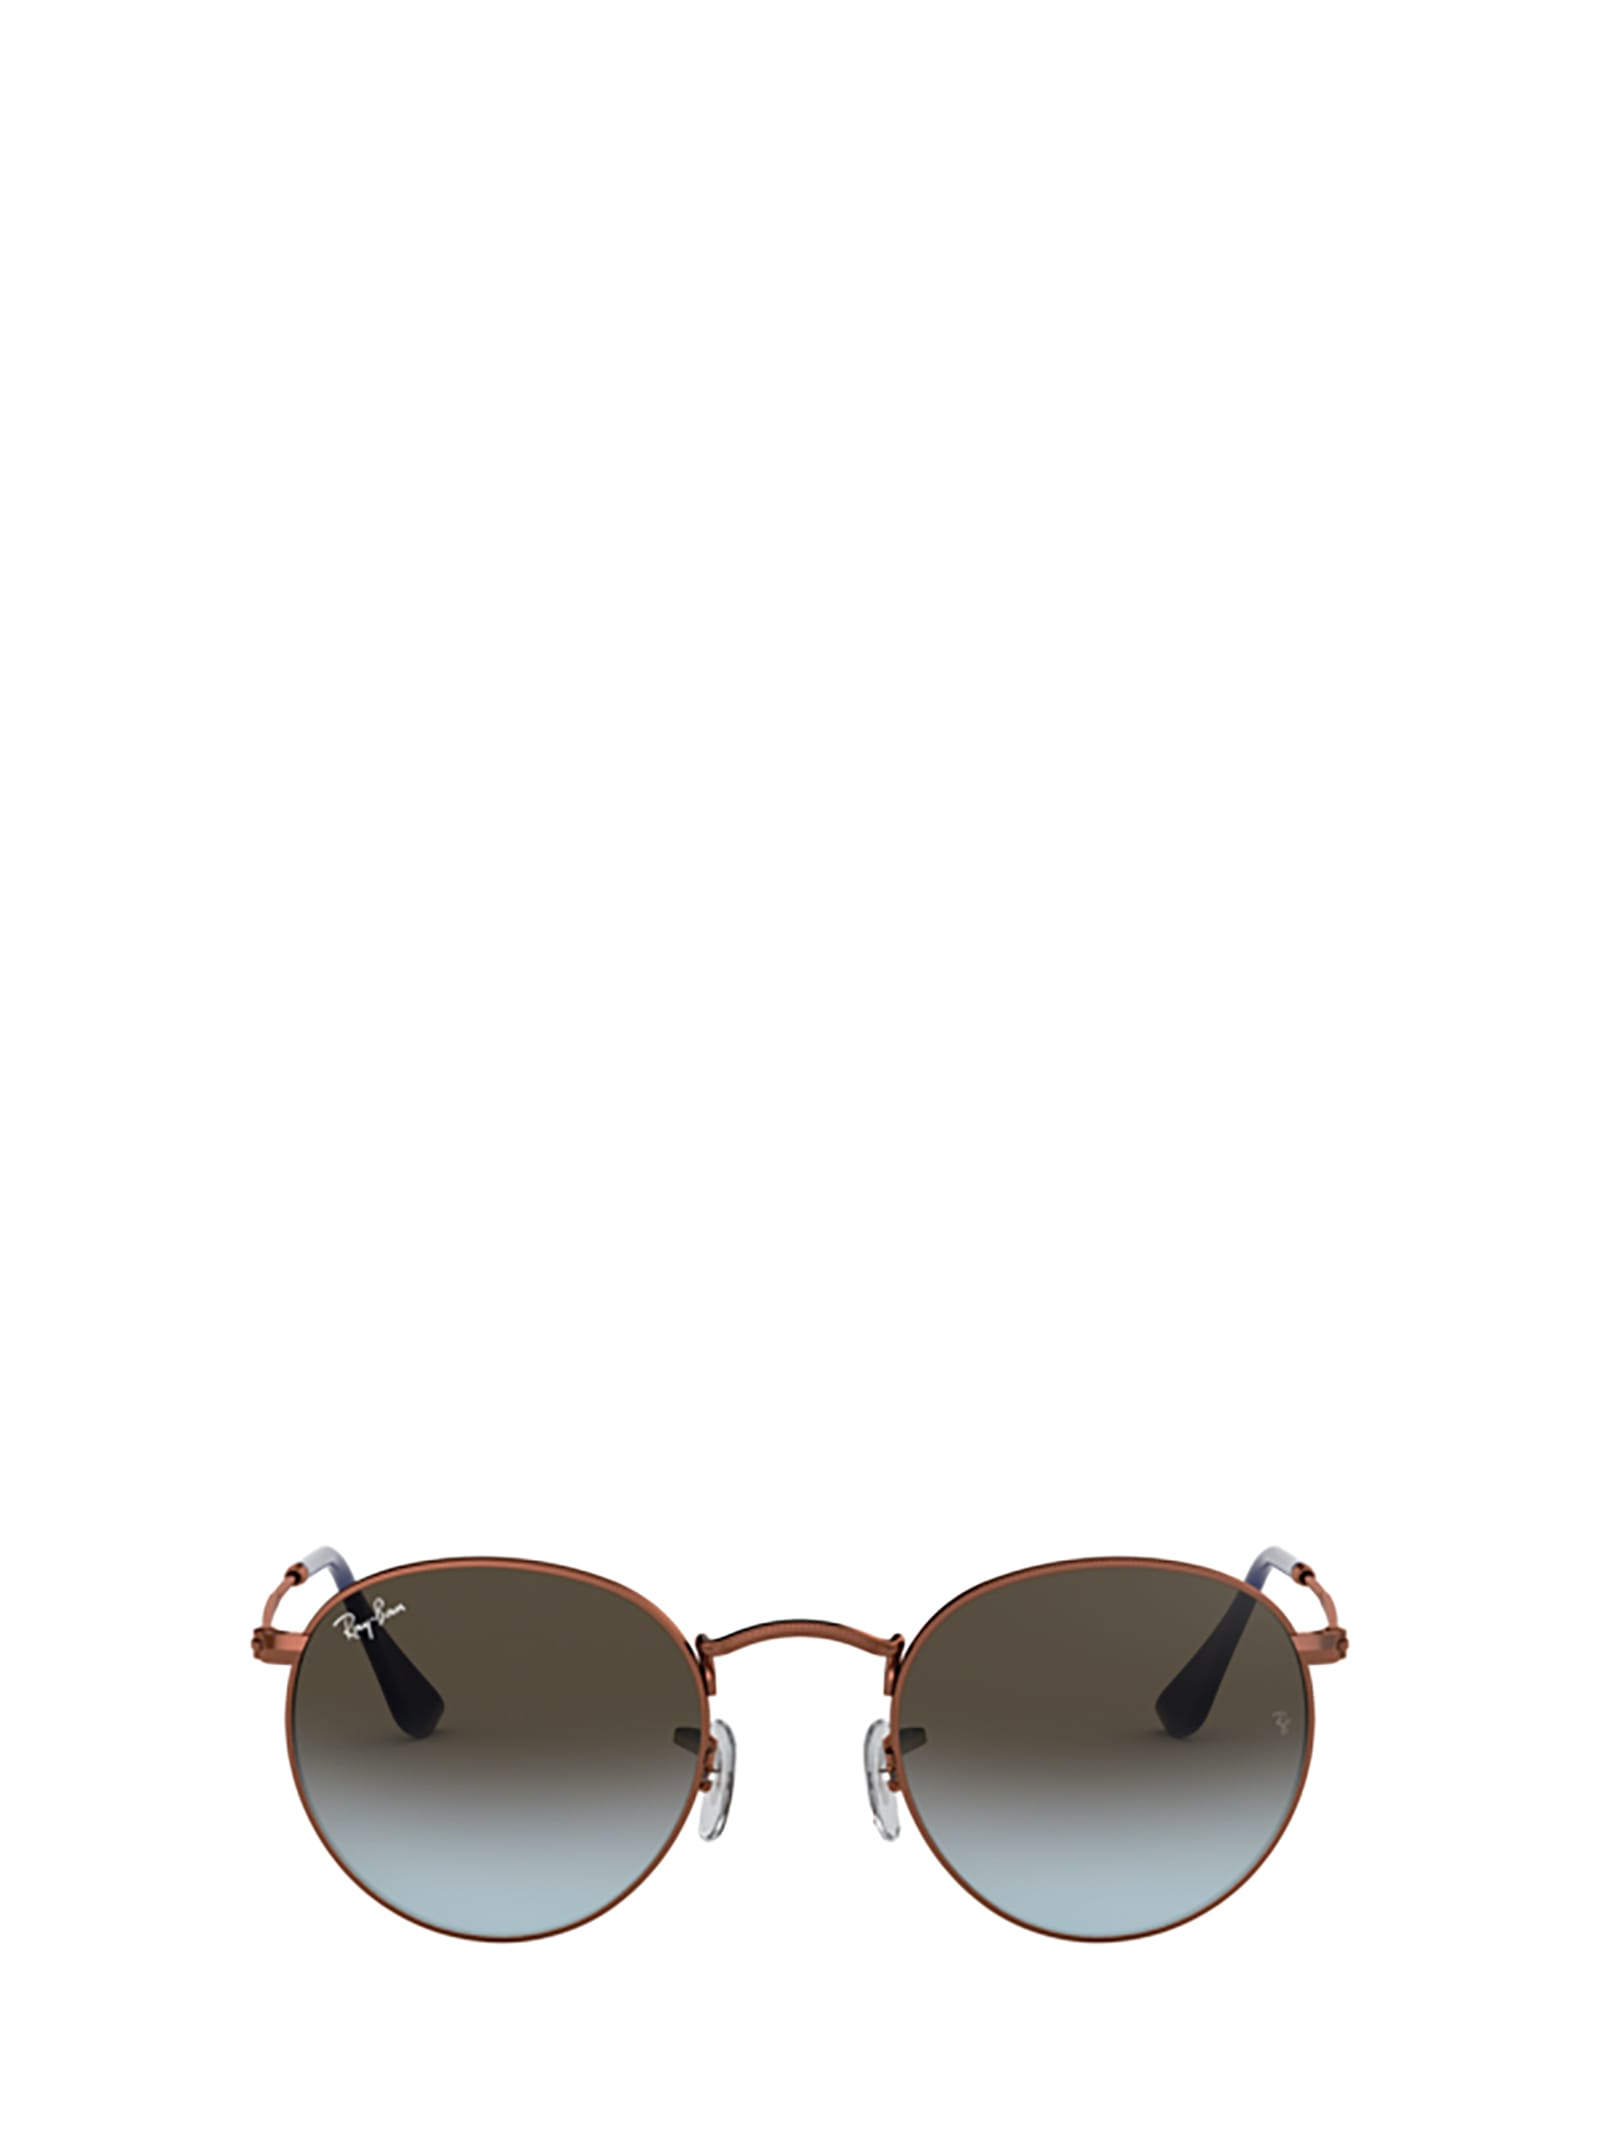 Ray-Ban Ray-ban Rb3447 Dark Bronze Sunglasses